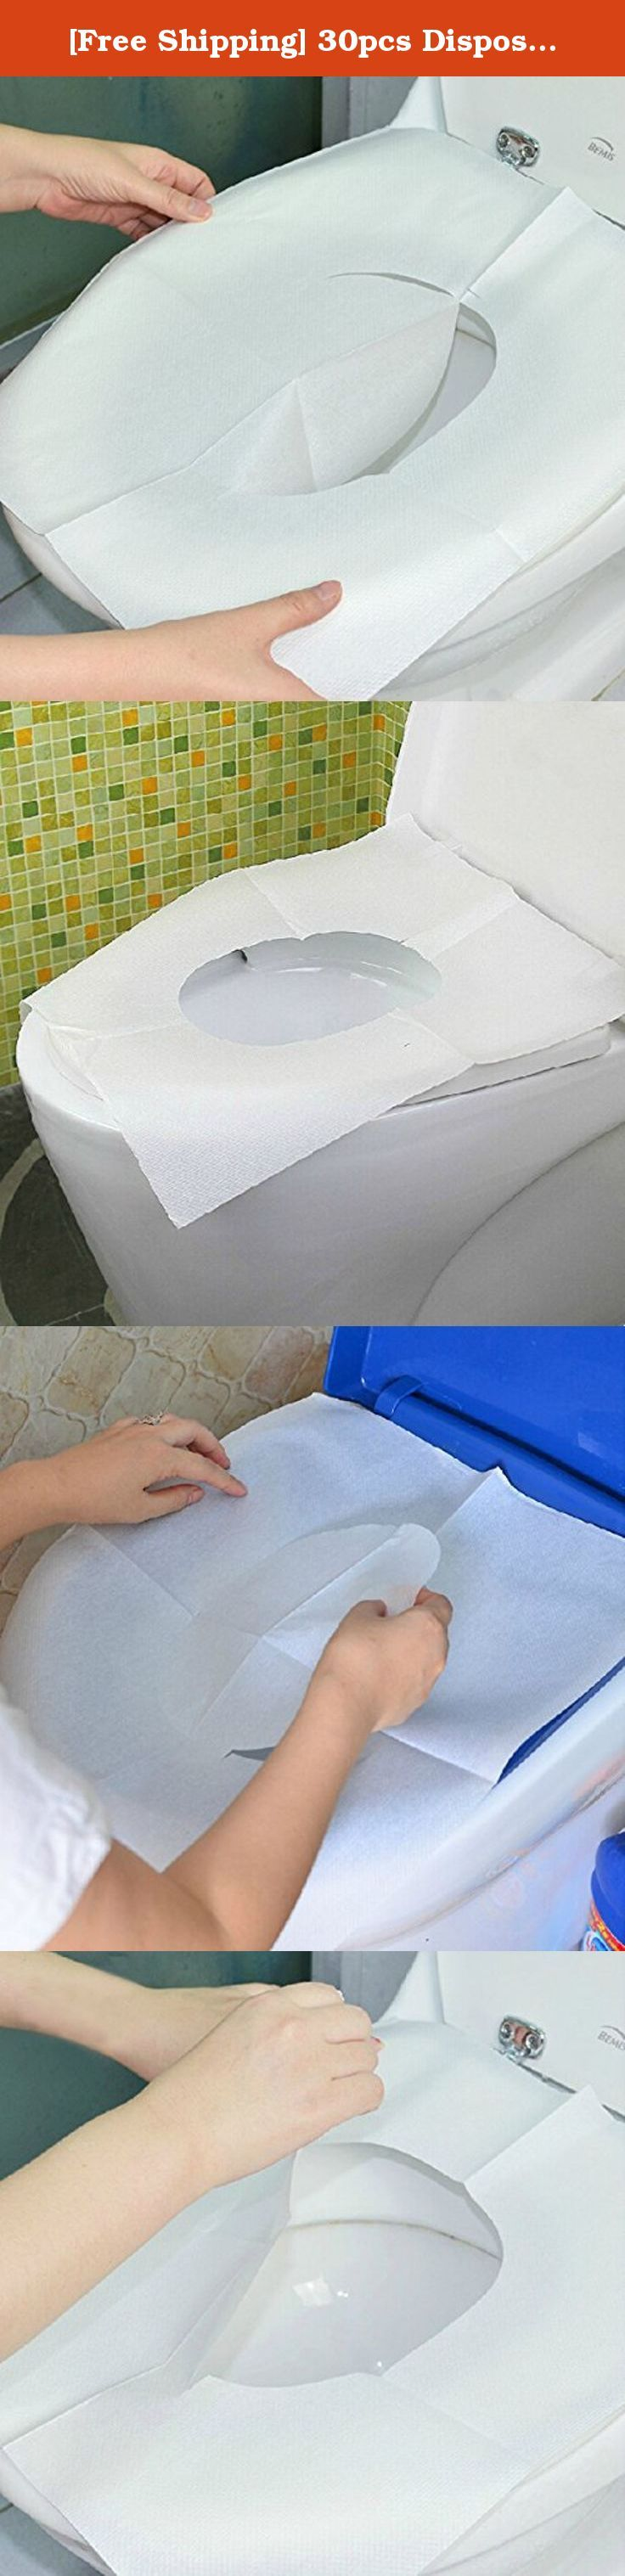 [Free Shipping] 30pcs Disposable Toilet Mat Antibacterial Waterproof Seat Cover Paper // 30pcs estera higiénico desechable de papel cubierta de asiento impermeable antibacteriano. Description: Product packaging compact and convenient for the journey Antibacterial closestool mat is suitable for travel and business trip in the hotel or hotel. Using pure natural napped fabric which has good solubility in water and it can be directly thrown into the toilet after use,not blocked. Put it on the...